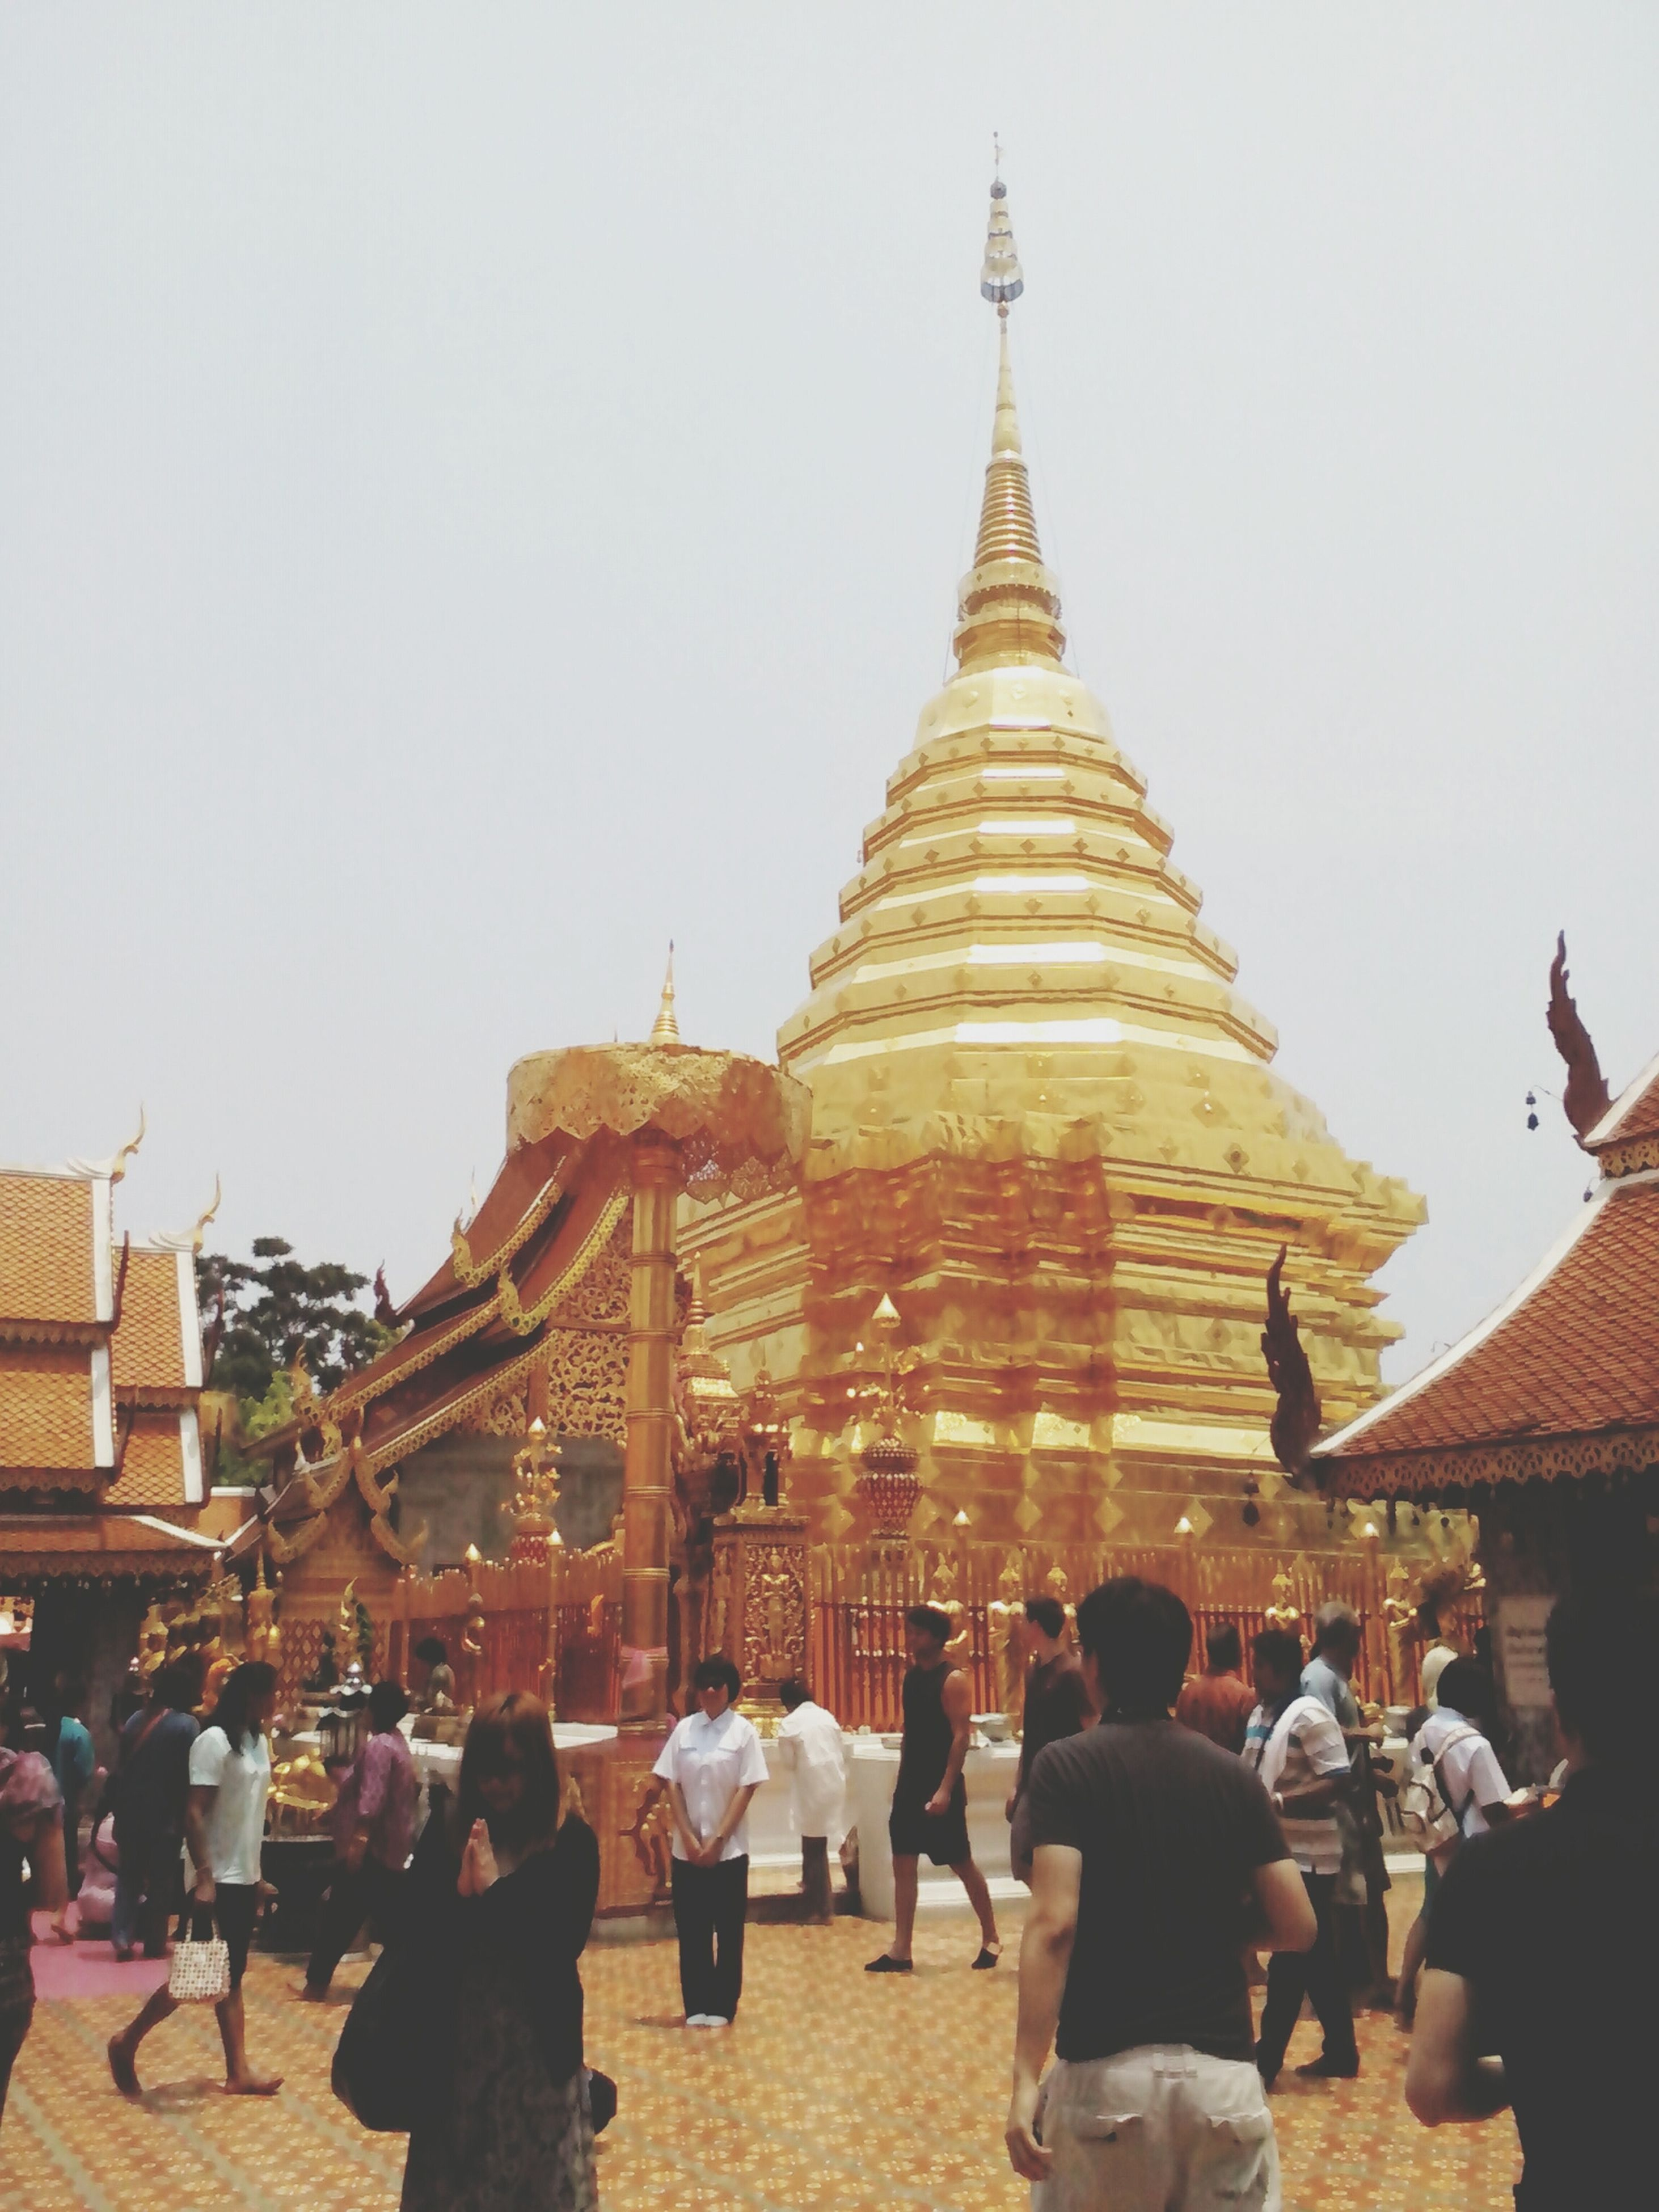 place of worship, religion, spirituality, architecture, building exterior, large group of people, built structure, famous place, tourism, travel destinations, temple - building, travel, cultures, person, history, clear sky, international landmark, tourist